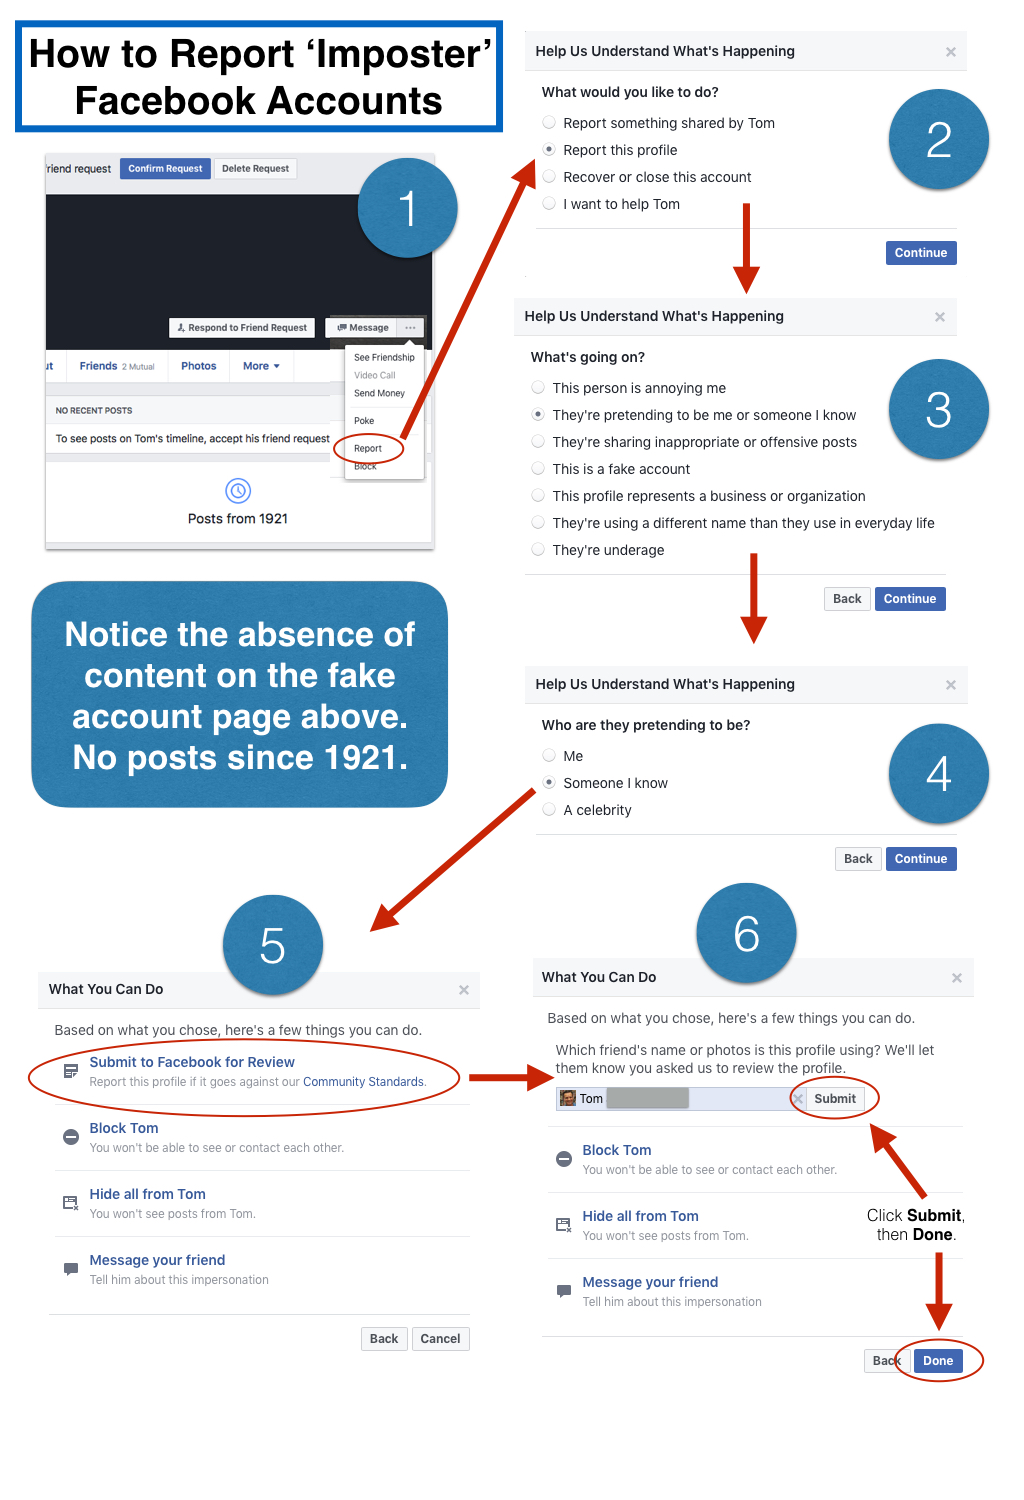 20160910sa0700-how-to-report-fake-imposter-facebook-accounts-1024x1500